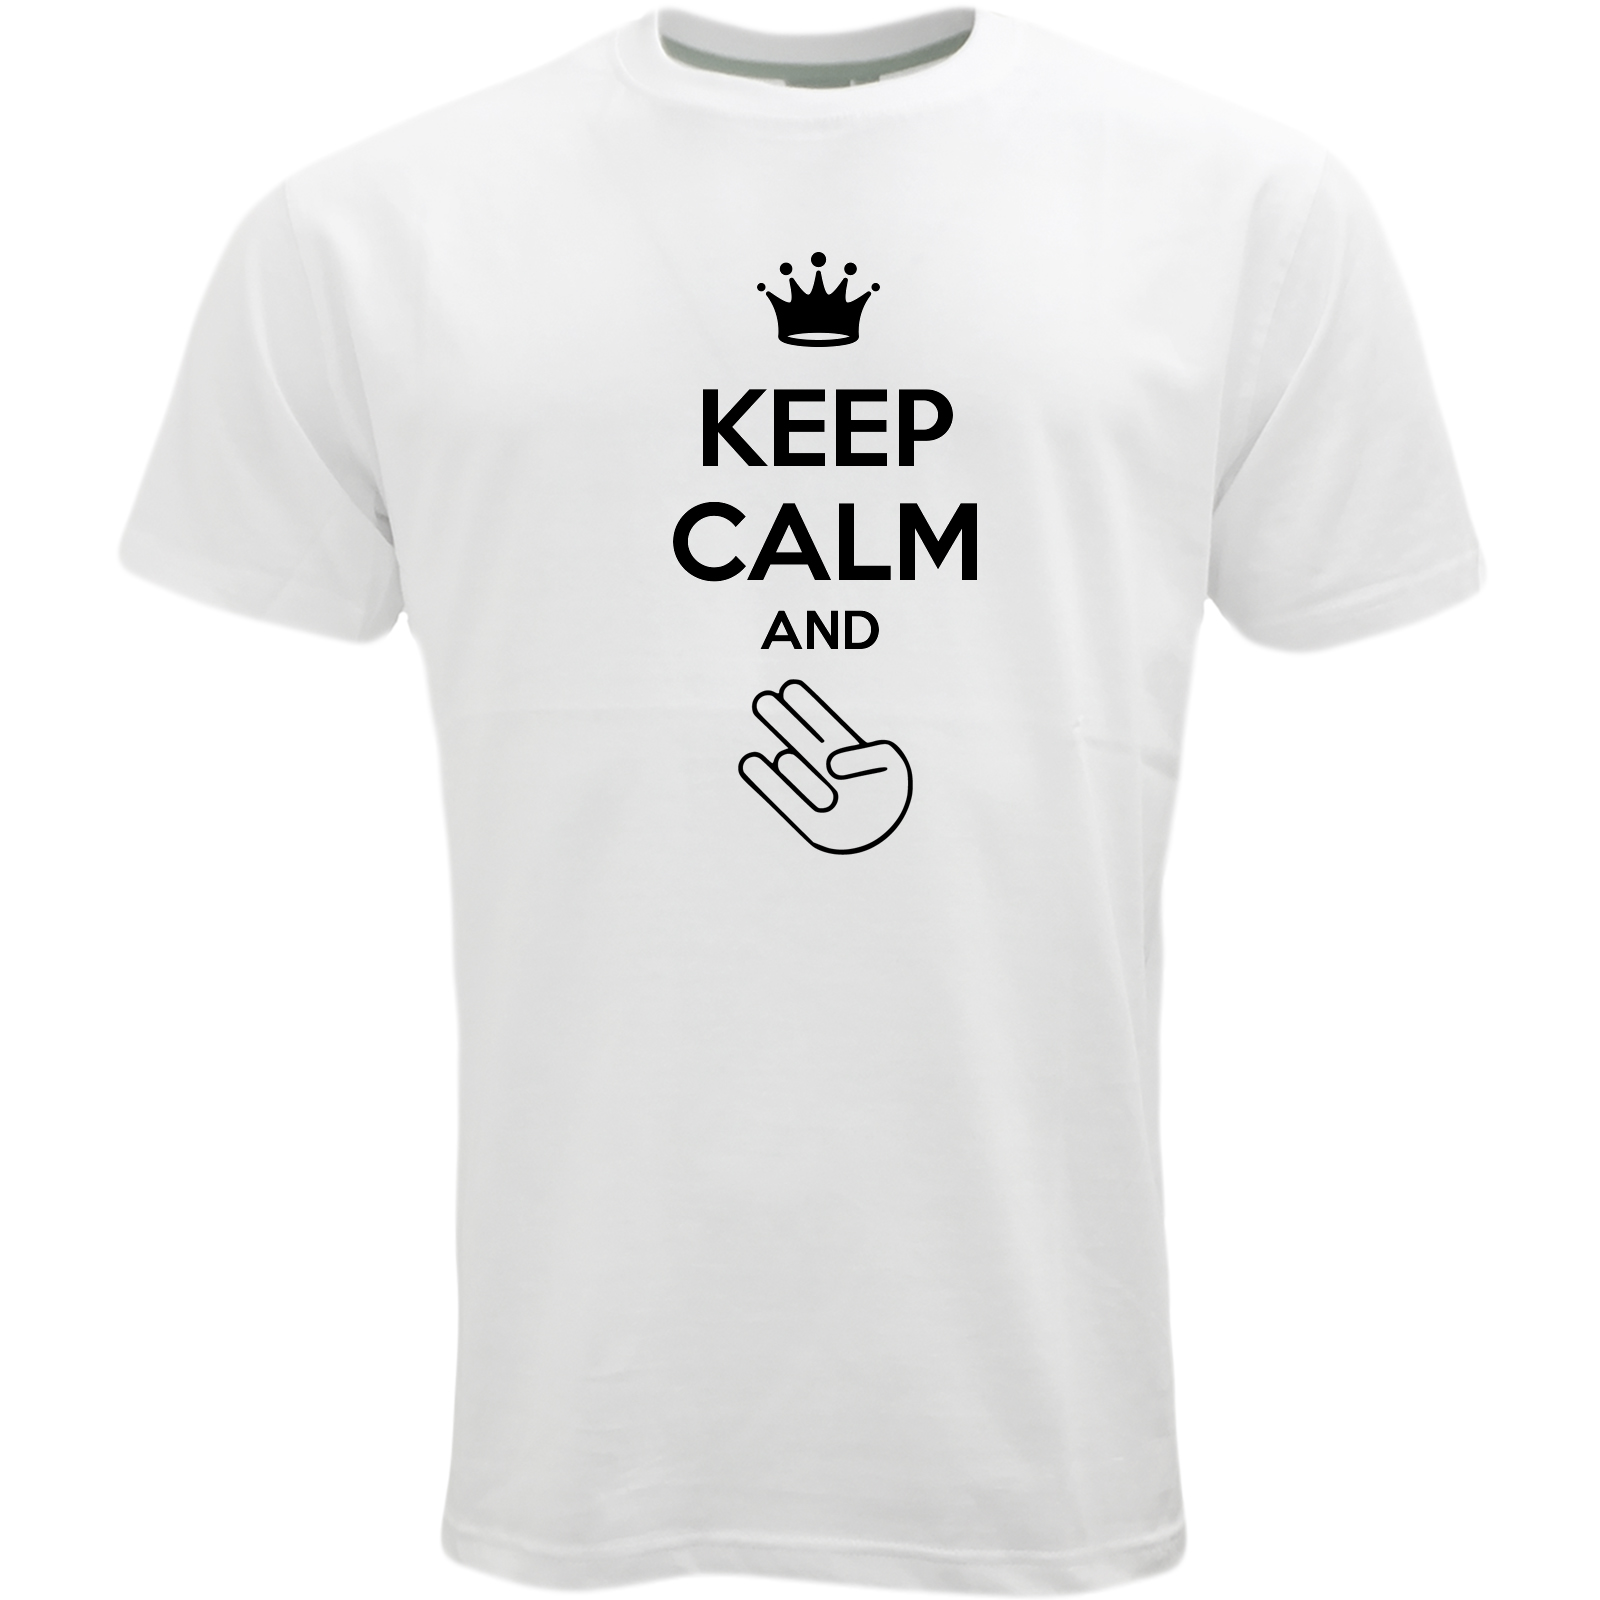 Custom Design White Keep Calm Logo T Shirt 65 Keep Calm 2